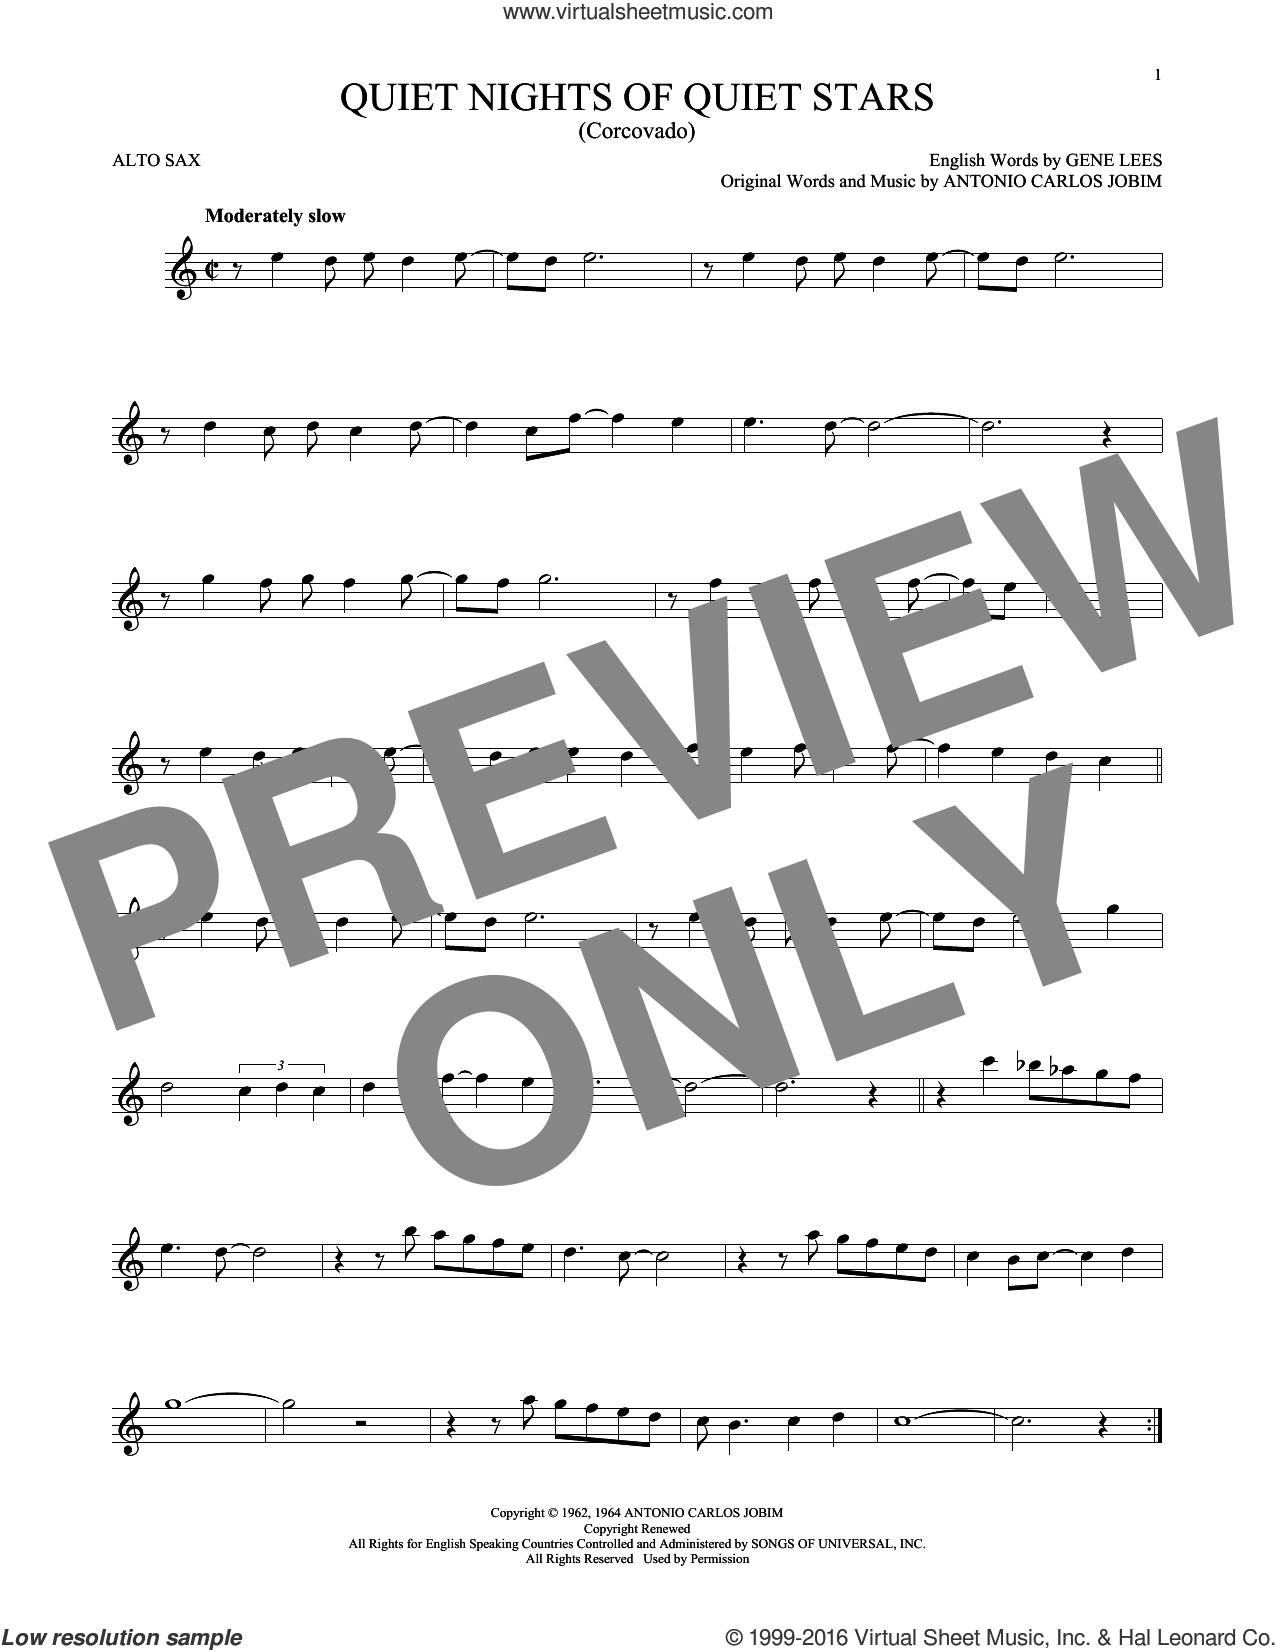 Quiet Nights Of Quiet Stars (Corcovado) sheet music for alto saxophone solo by Andy Williams, Antonio Carlos Jobim and Eugene John Lees, intermediate skill level